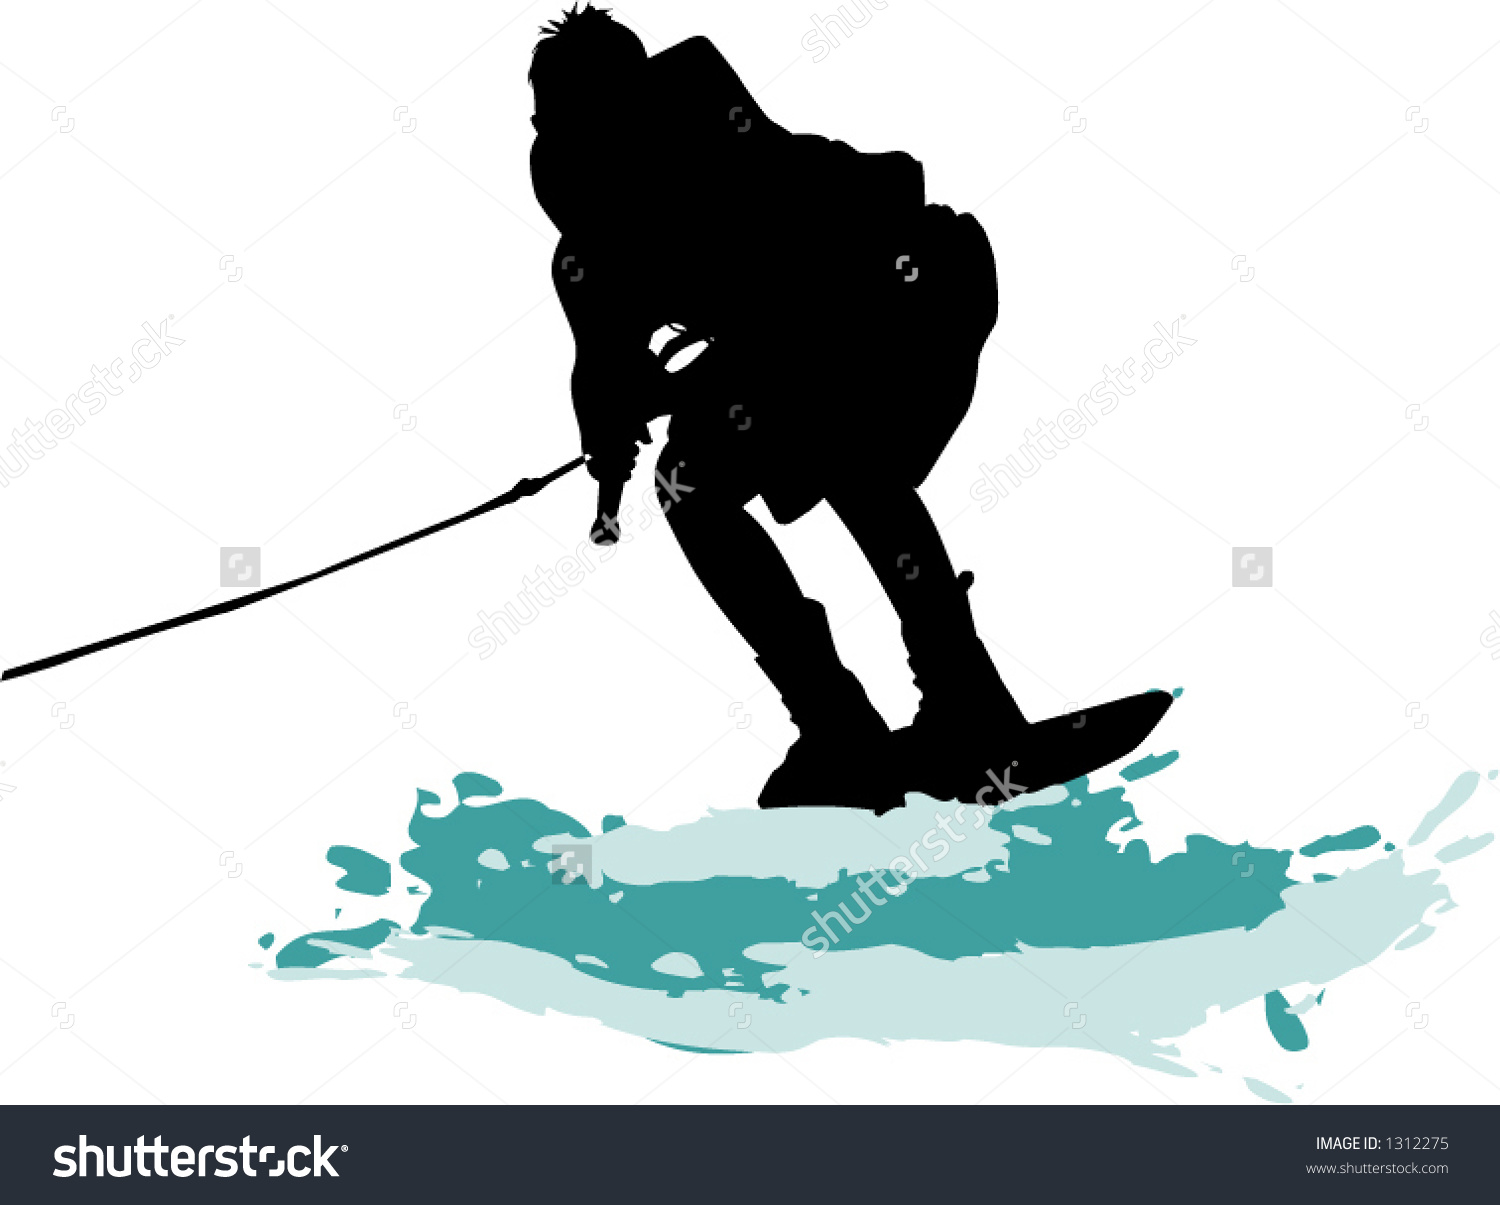 Wakeboard Stock Vector Illustration 1312275 : Shutterstock.